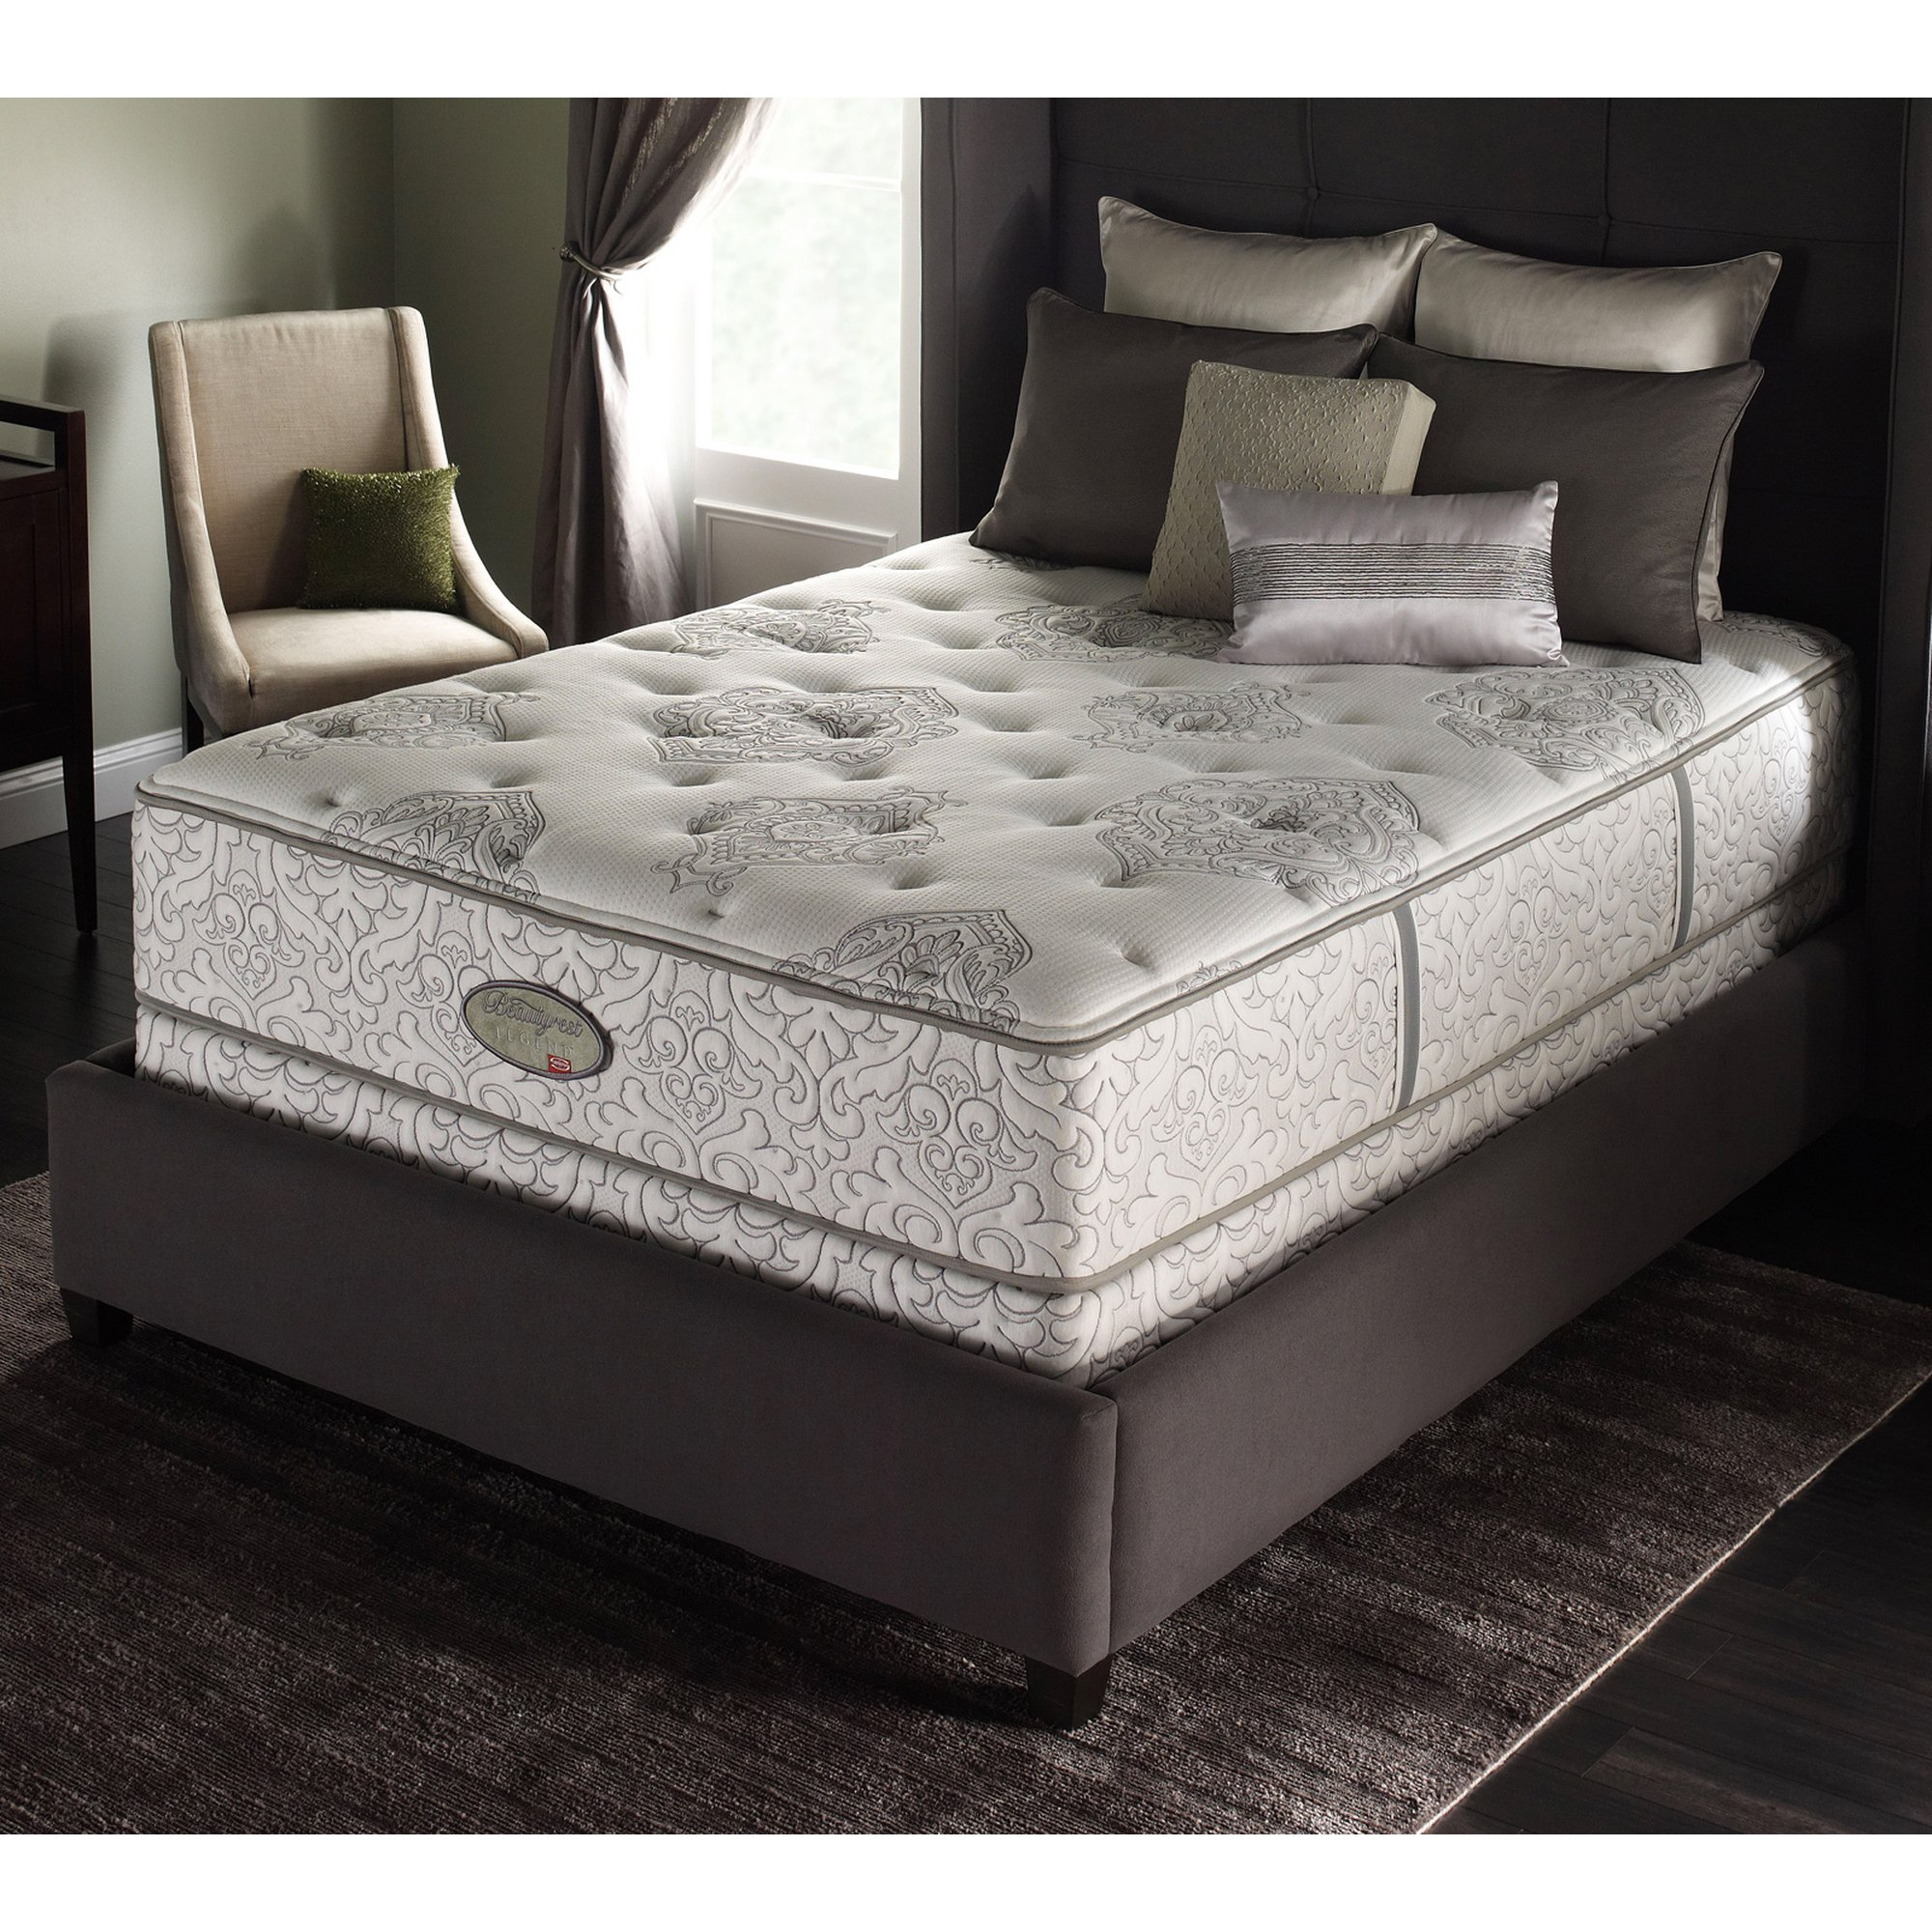 mattress closeouts 11425 66th st largo fl 33773 yp com